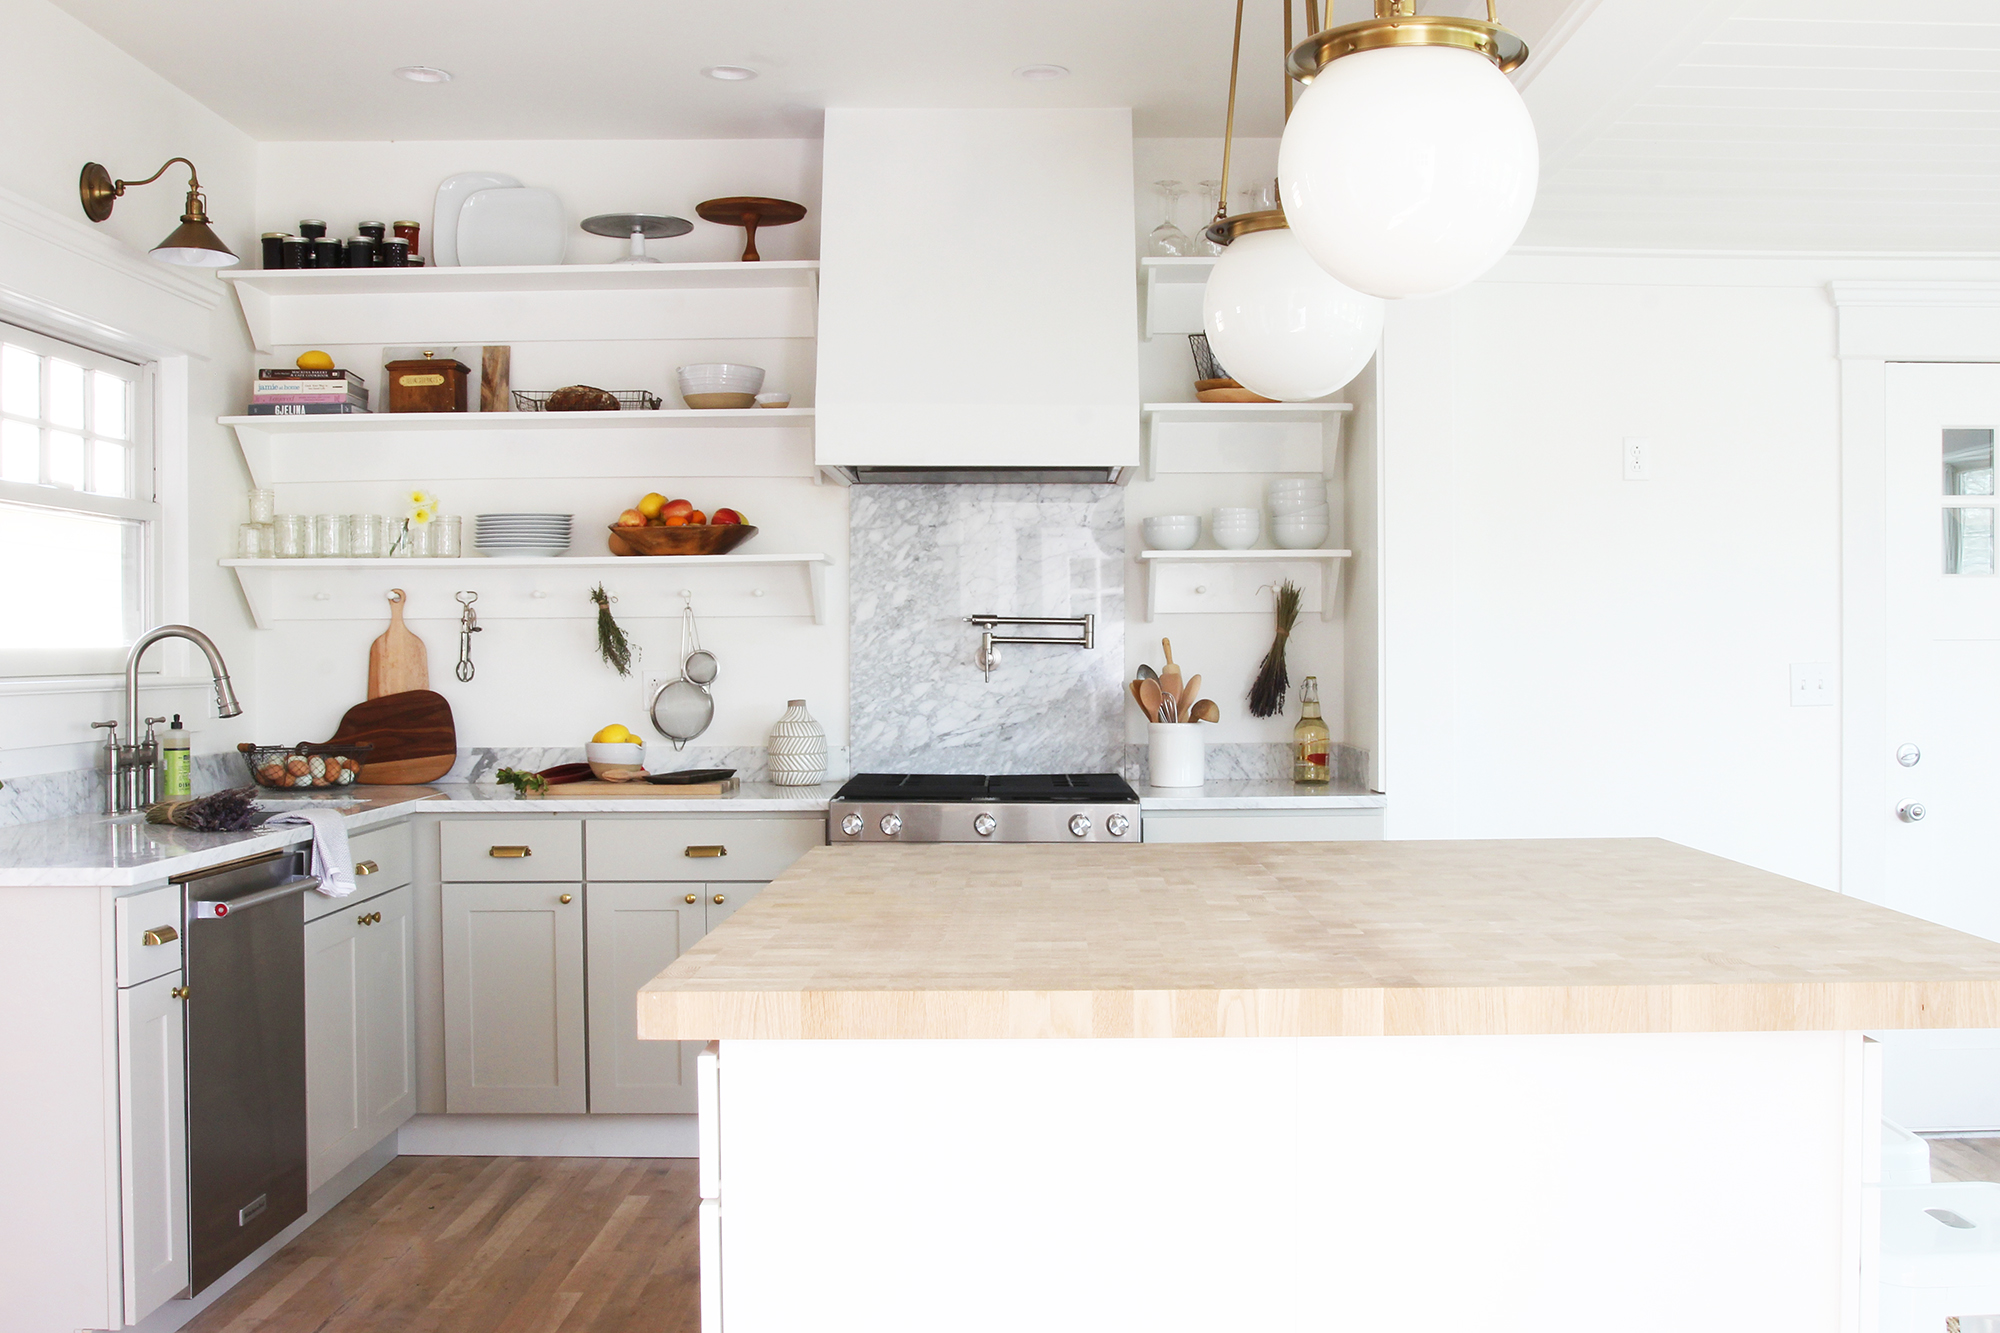 The Grit and Polish - Porch House Kitchen Island Wide.jpg